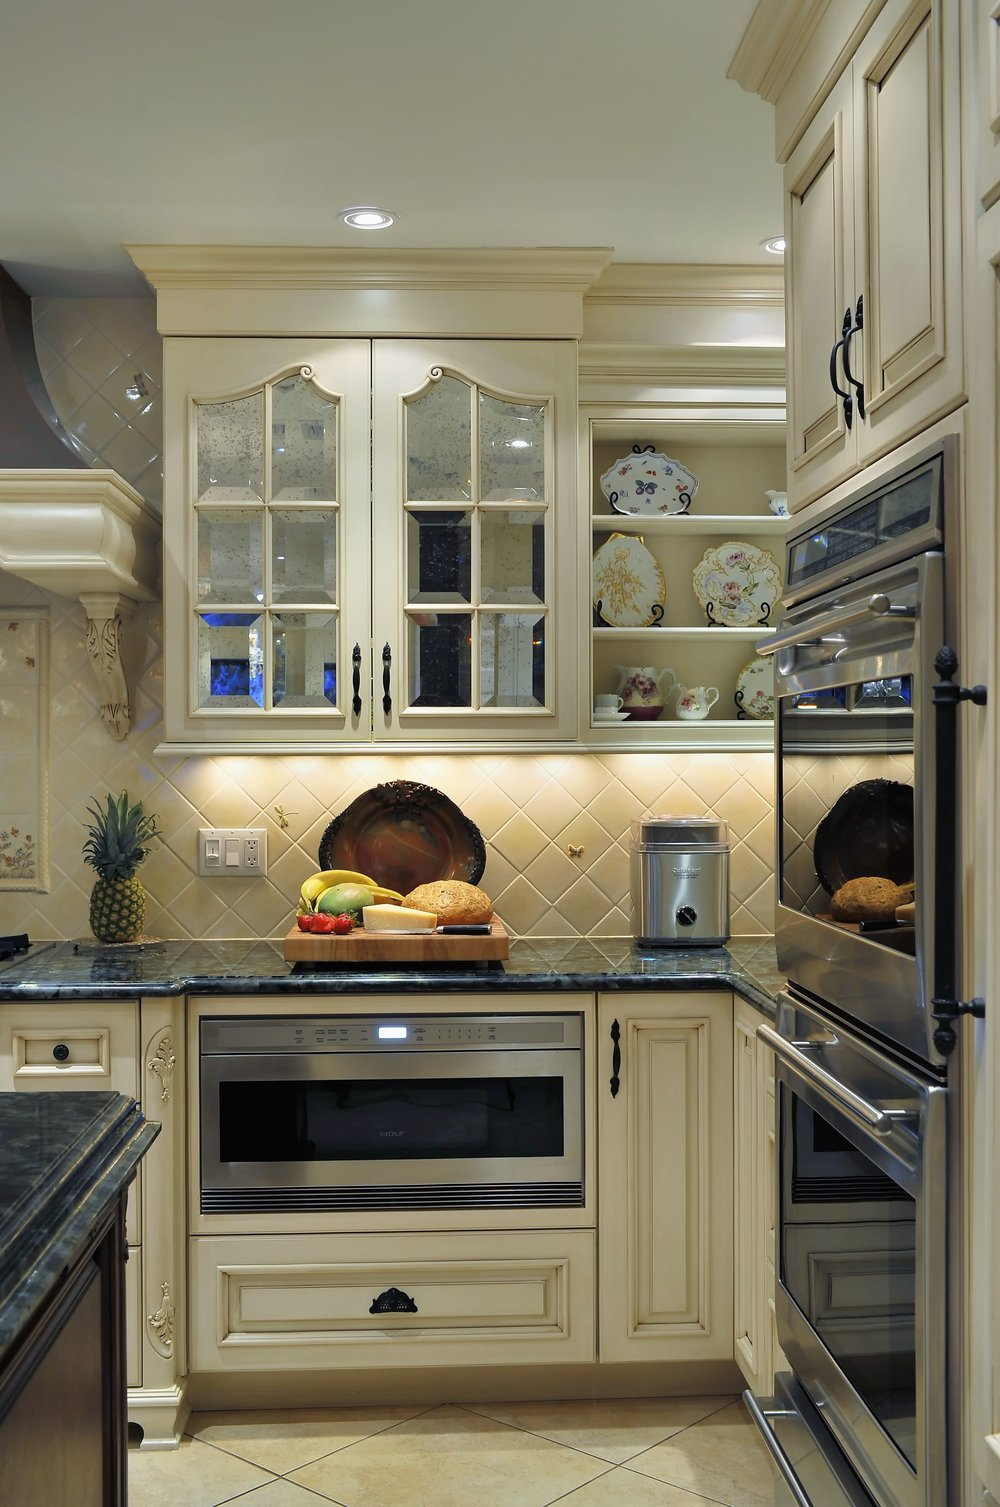 Traditional style kitchen with with upper close and open shelves